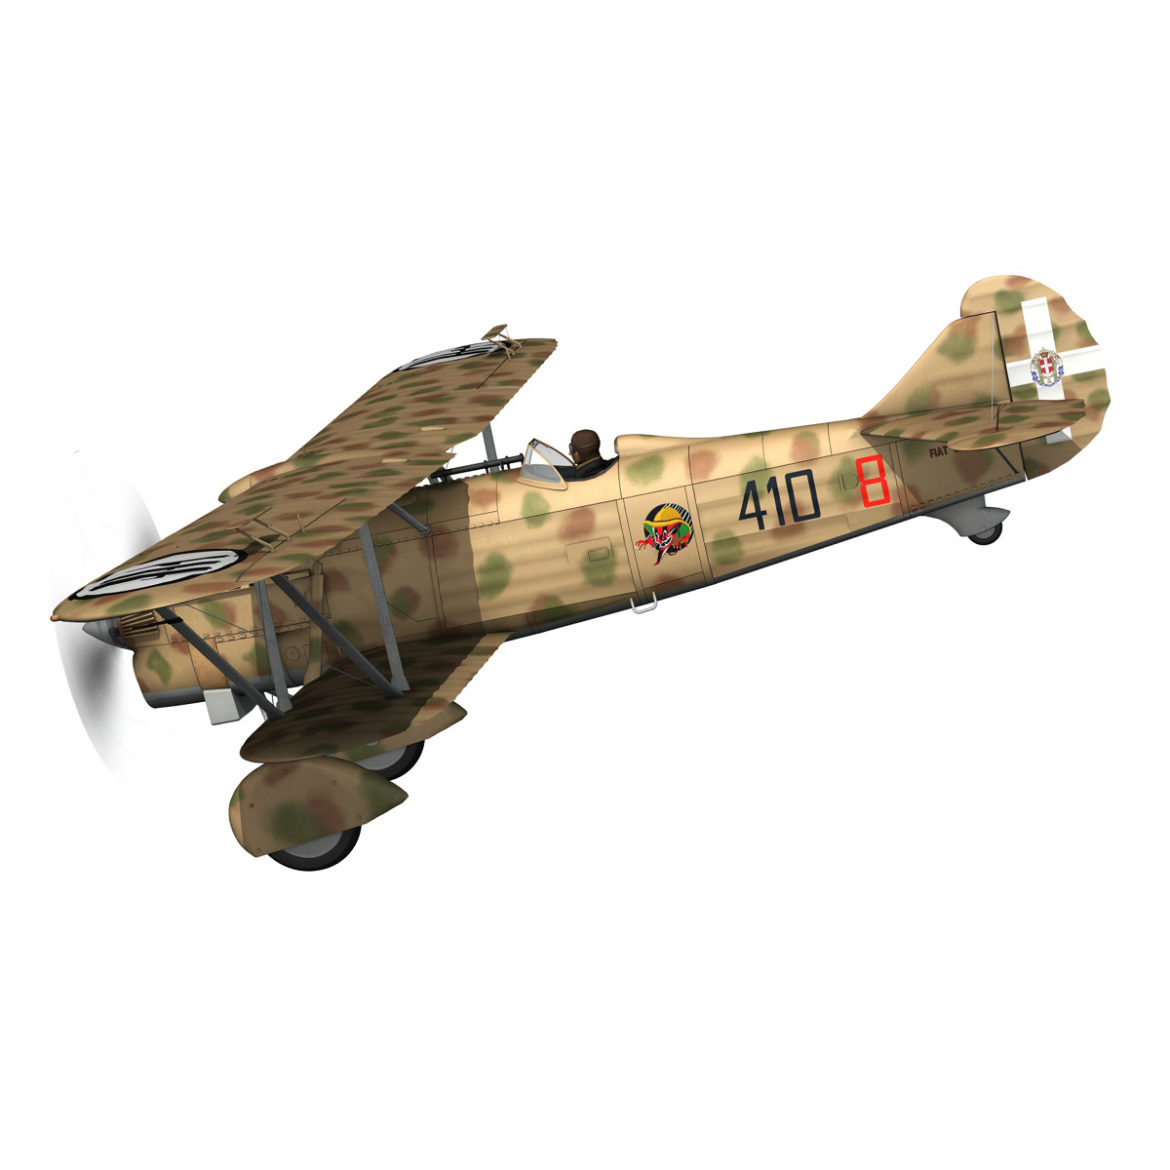 fiat cr.32 – italy airforce – 410 squadriglia 3d model fbx c4d lwo obj 307543